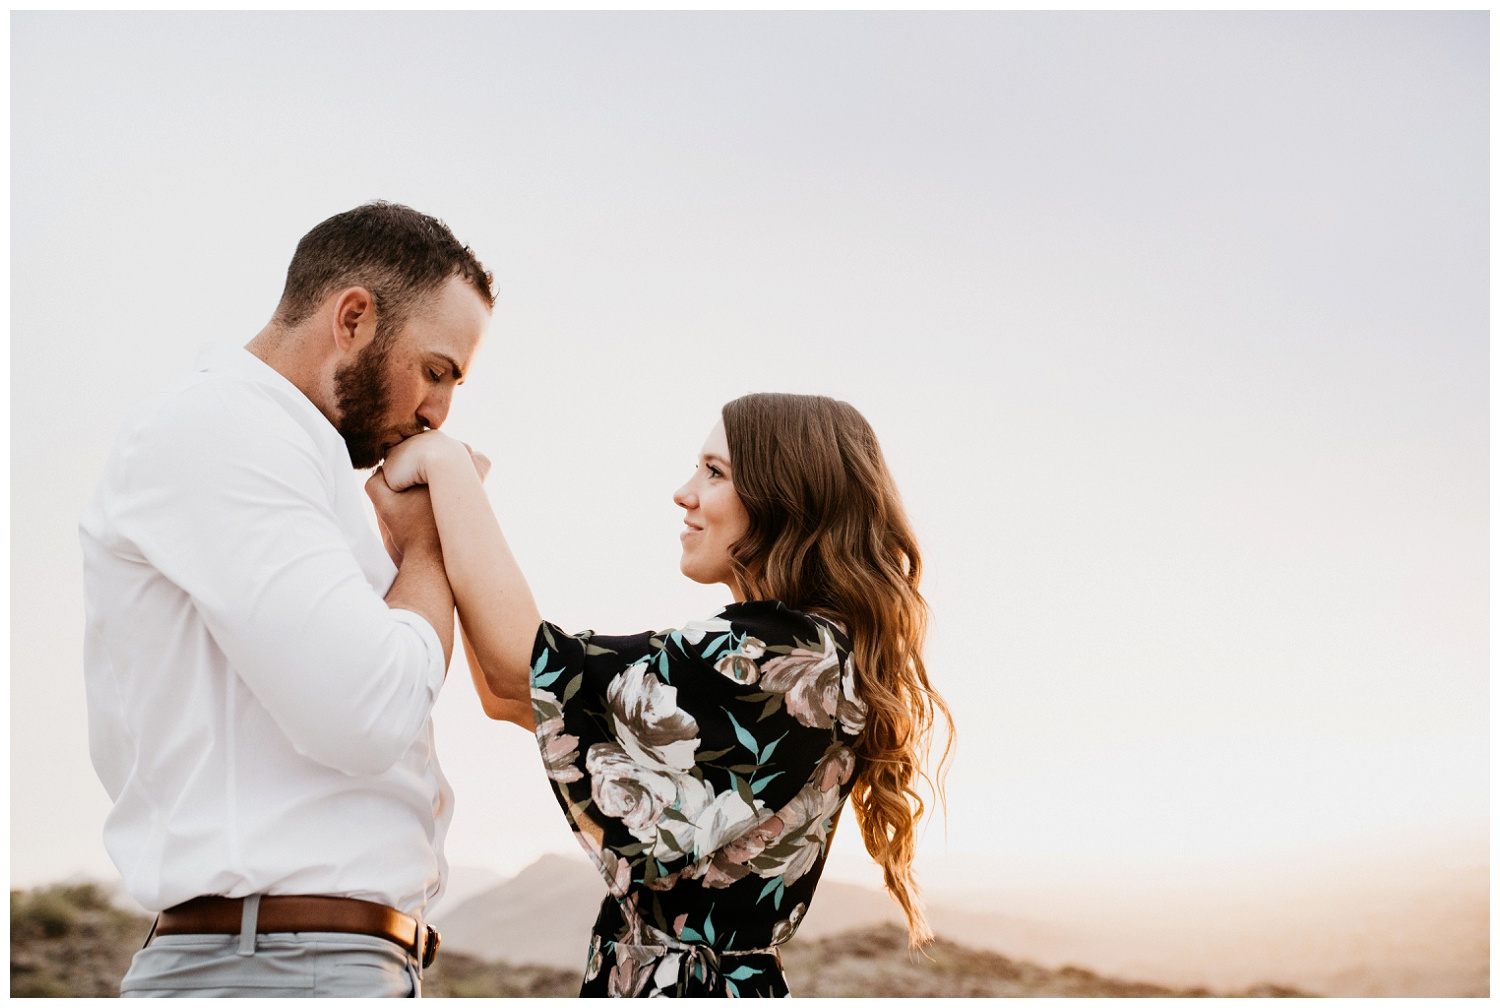 South Mountain Engagement Session Phoenix Wedding Photographer Ashtyn Nicole Photo 20